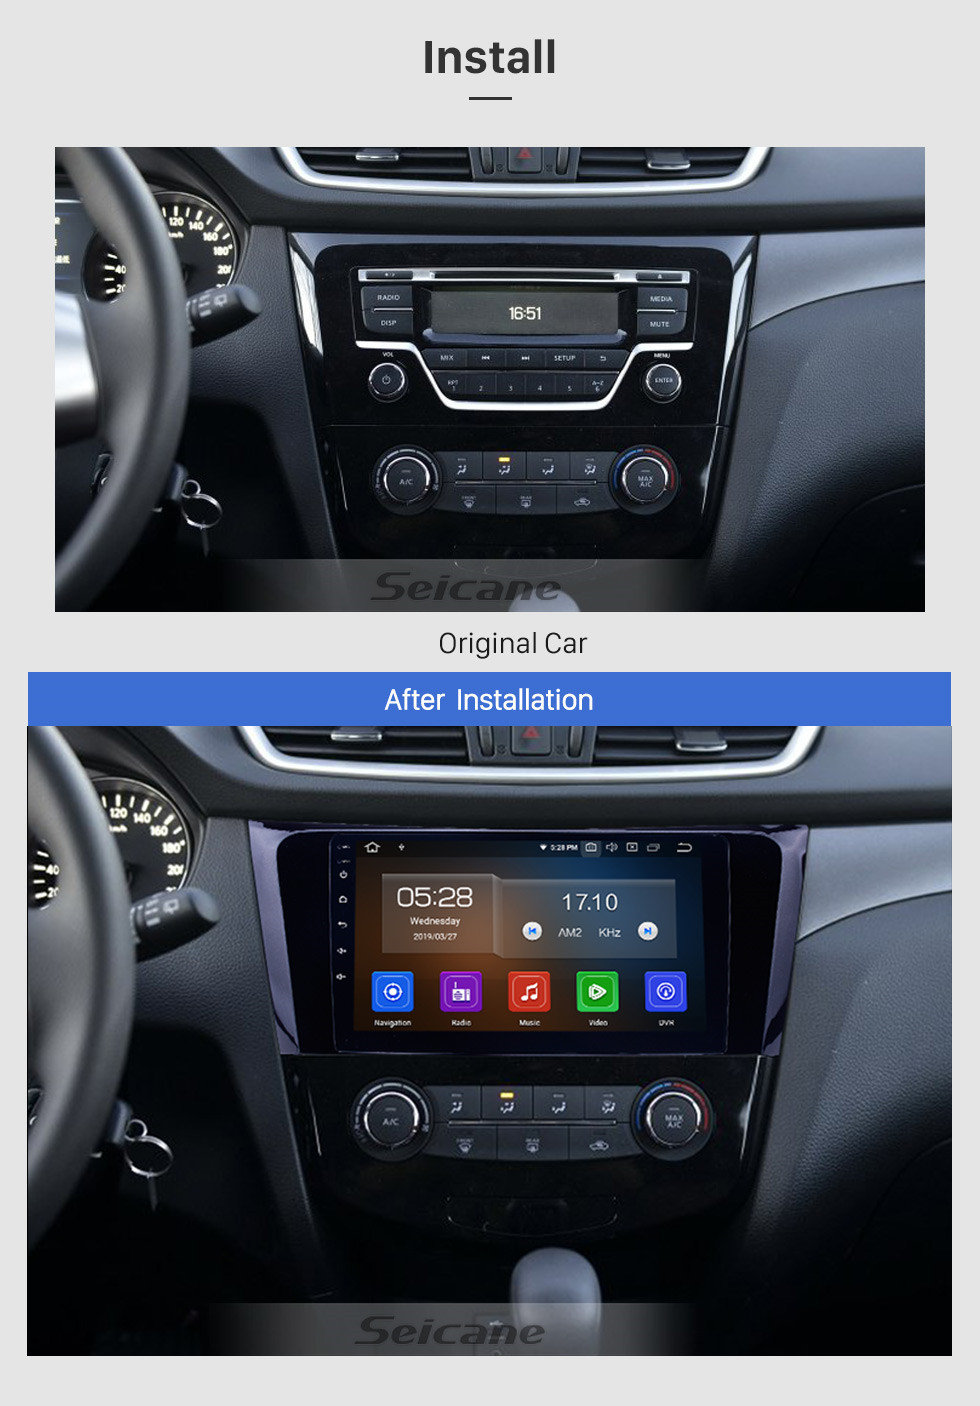 Seicane 9 inch HD touchscreen Radio GPS navigation system Android 9.0 for 2012-2017 NEW Nissan X-TRAIL Qashqai Steering Control Wheel 3G/4G WiFi Audio Bluetooth OBD2